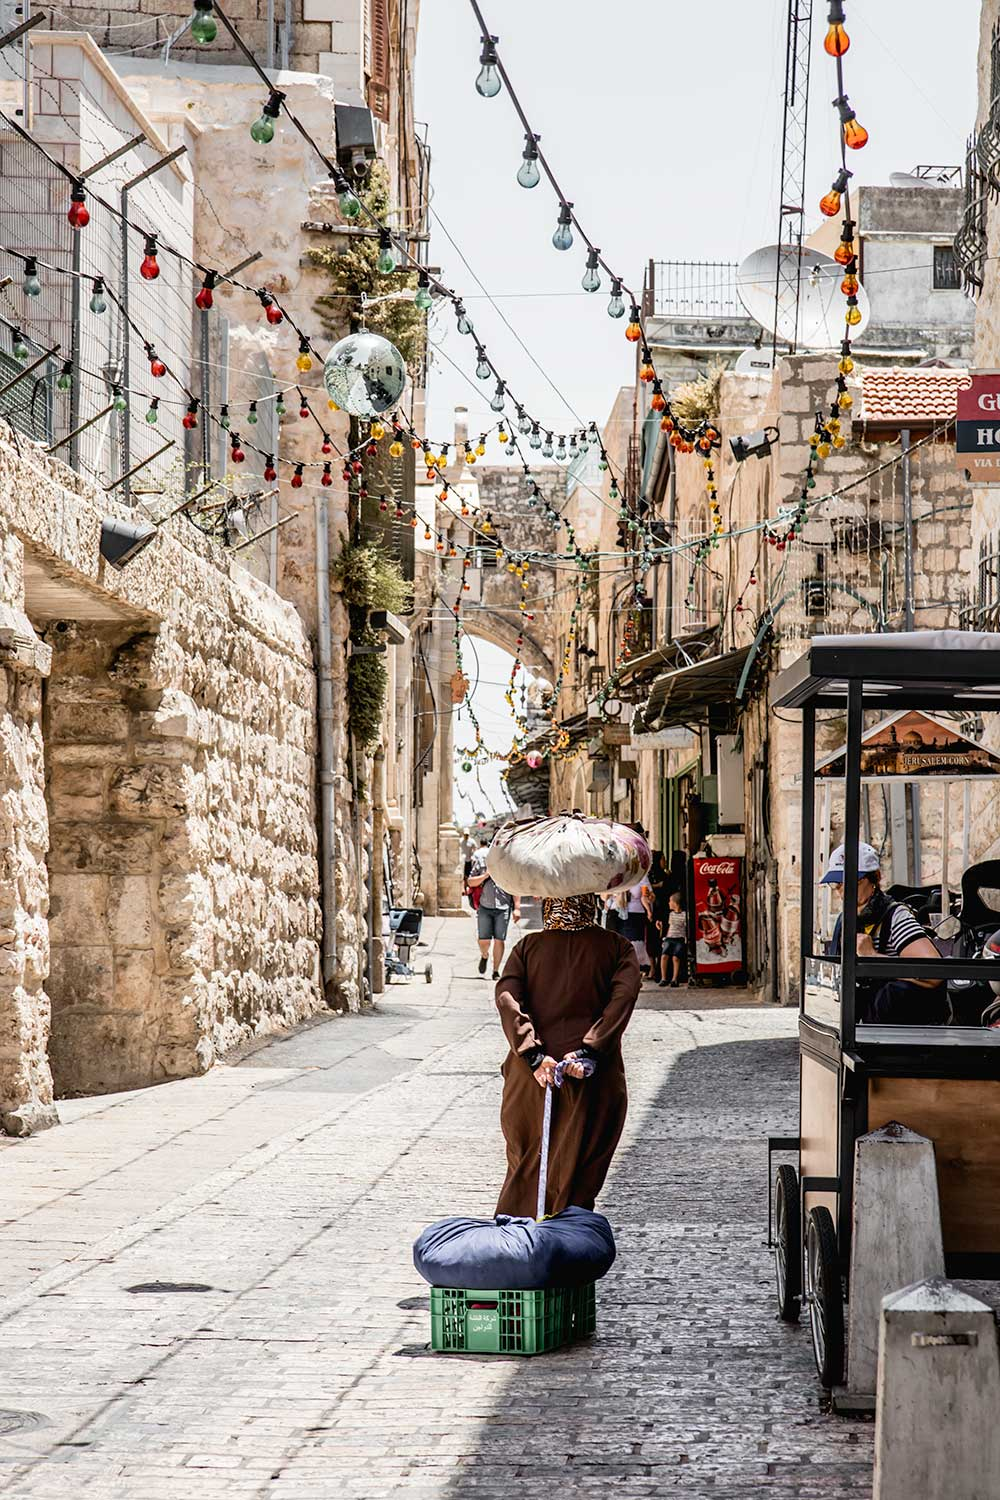 The lively Muslim Quarter during our two days in Jerusalem